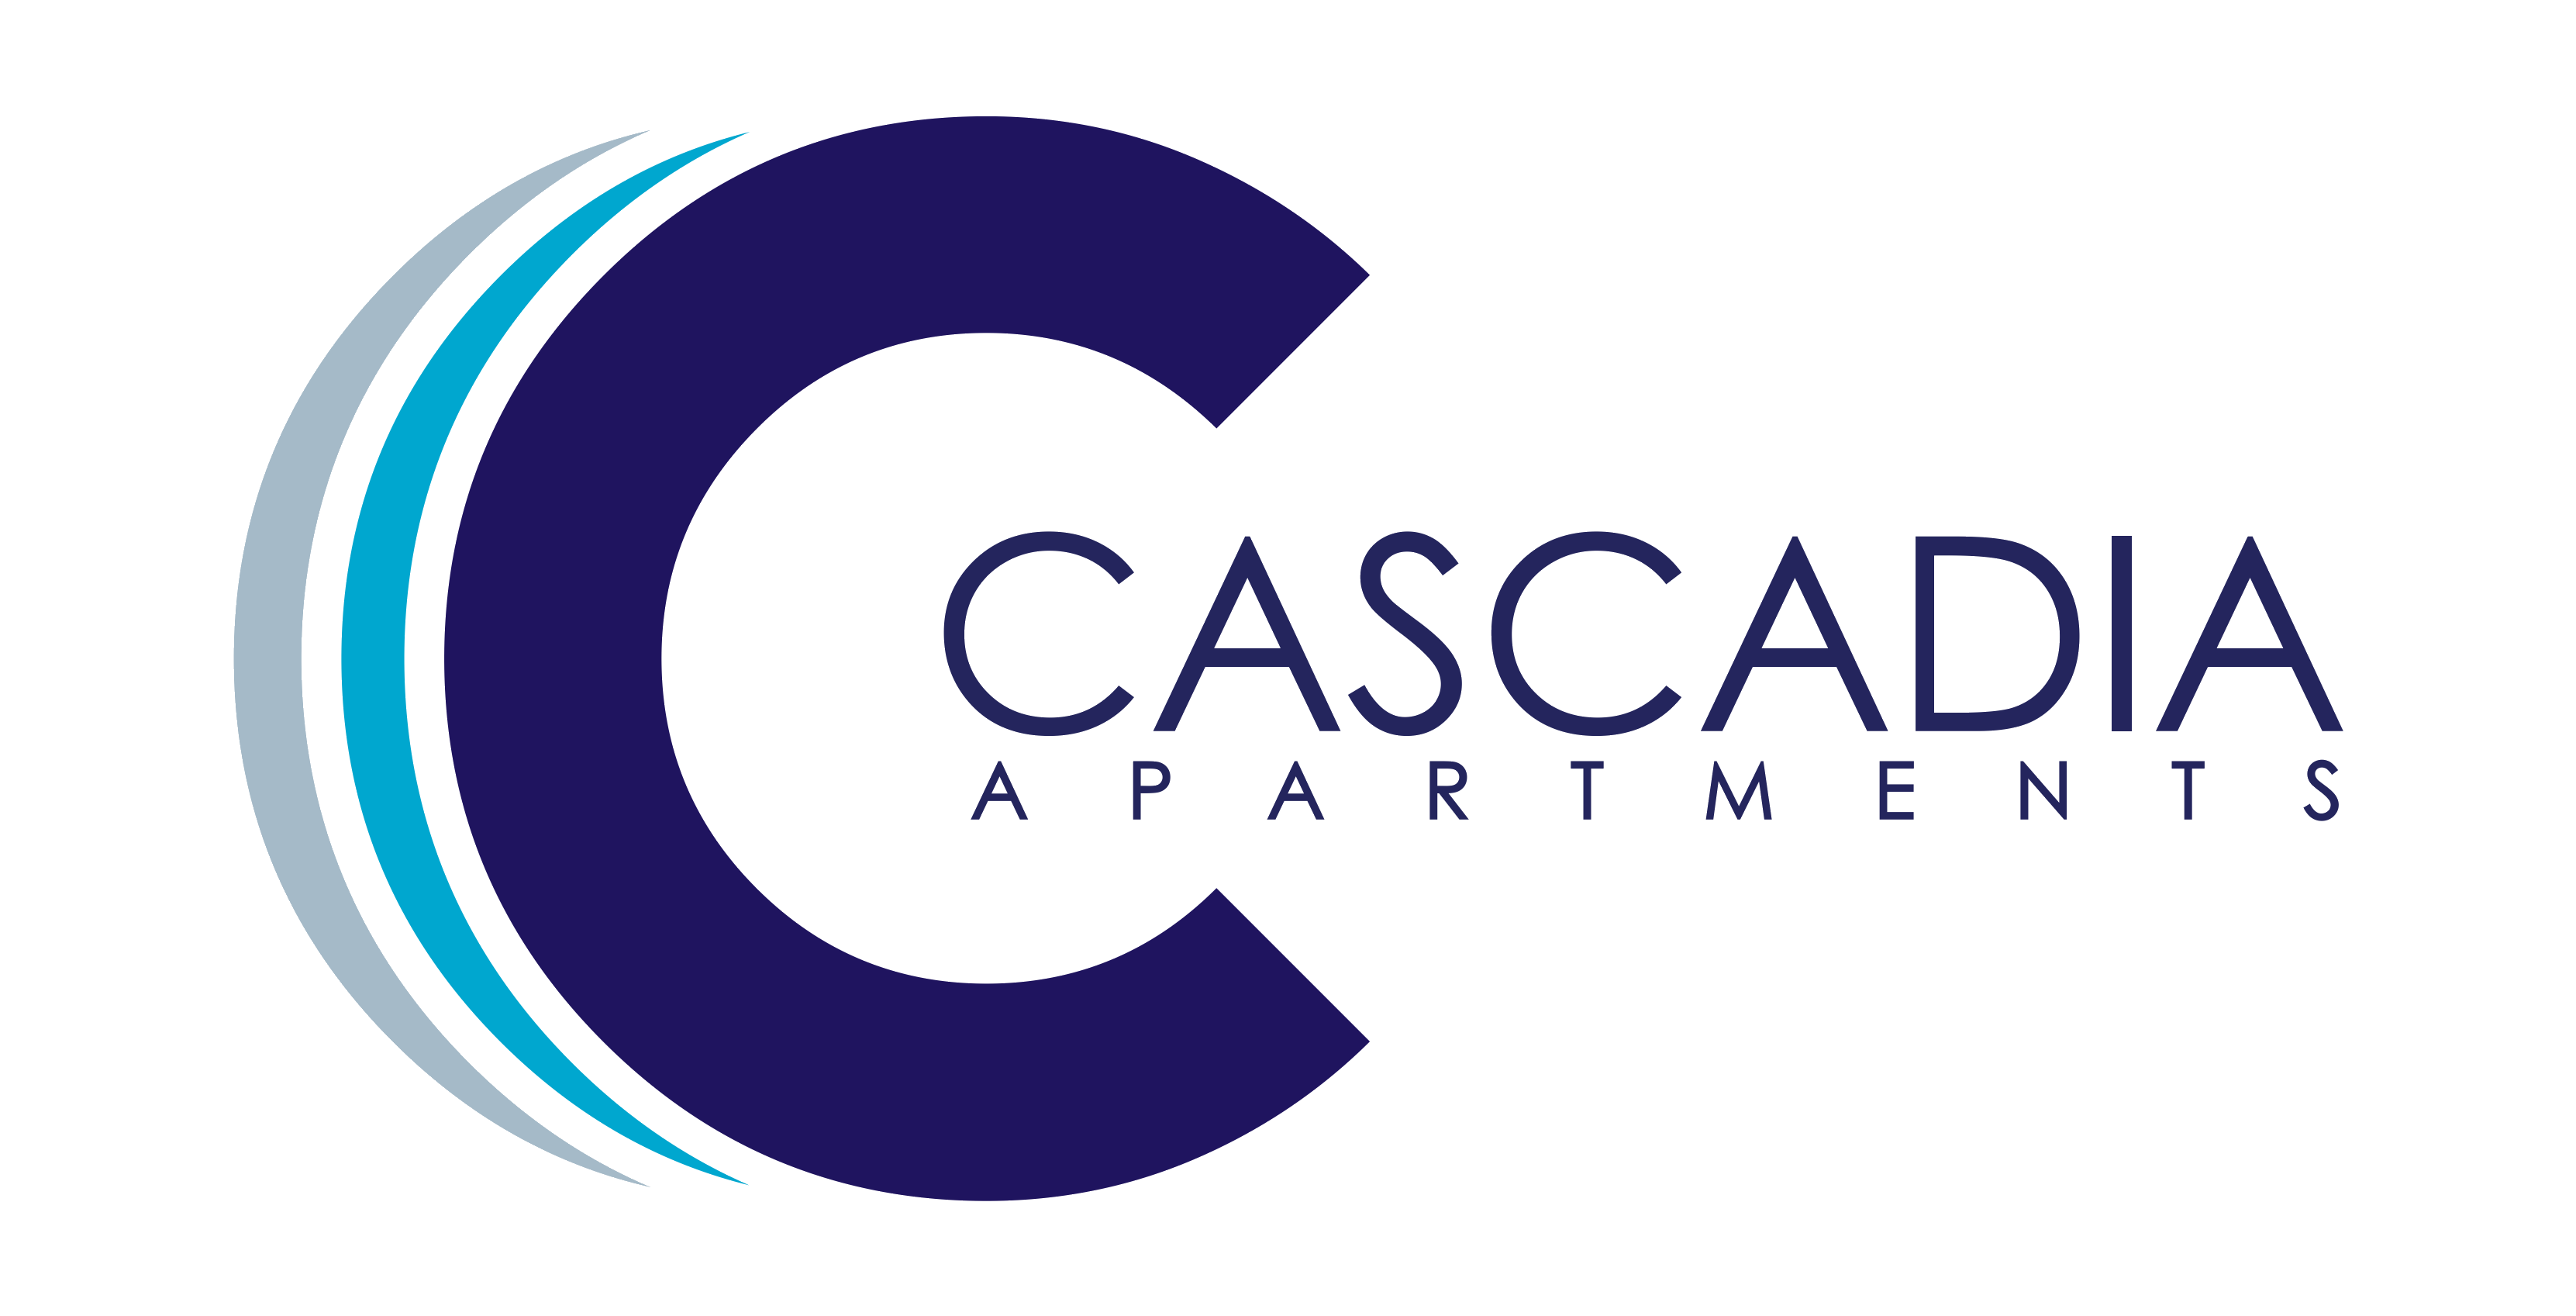 https://cascadiaapartments.co.ke/logo/5dc59d558b136.png